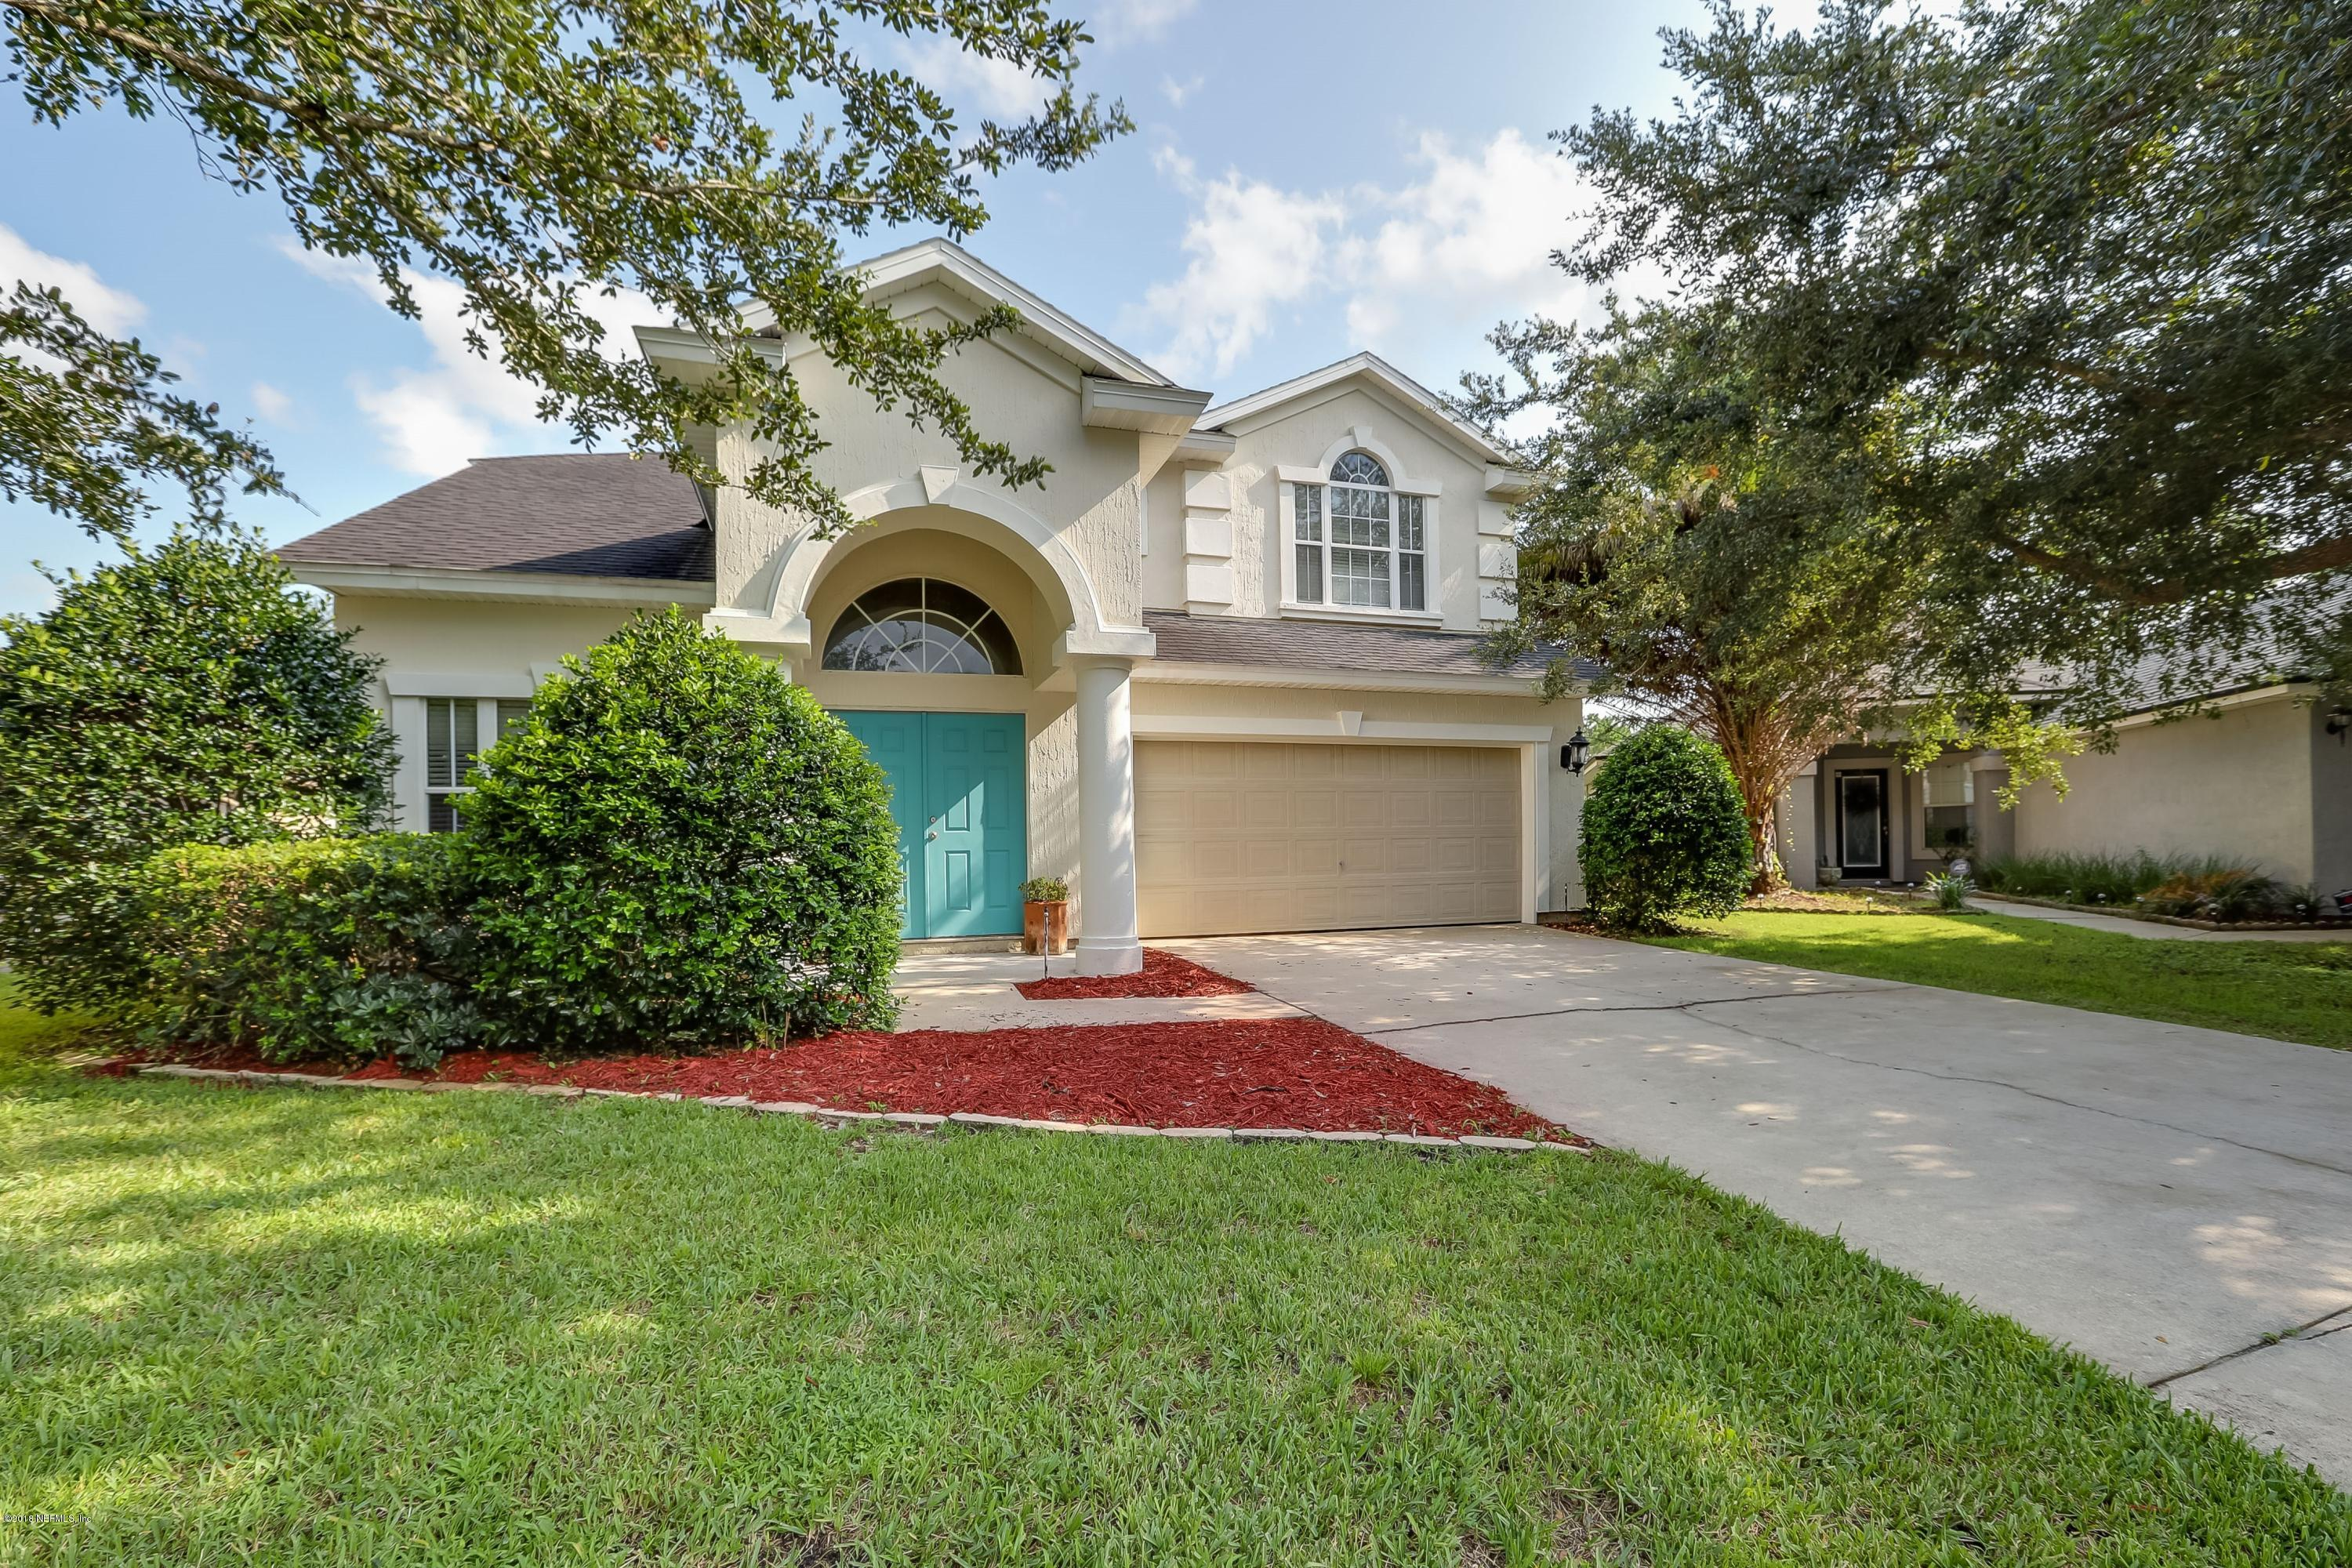 799 BELLSHIRE, ORANGE PARK, FLORIDA 32065, 4 Bedrooms Bedrooms, ,2 BathroomsBathrooms,Residential - single family,For sale,BELLSHIRE,954387